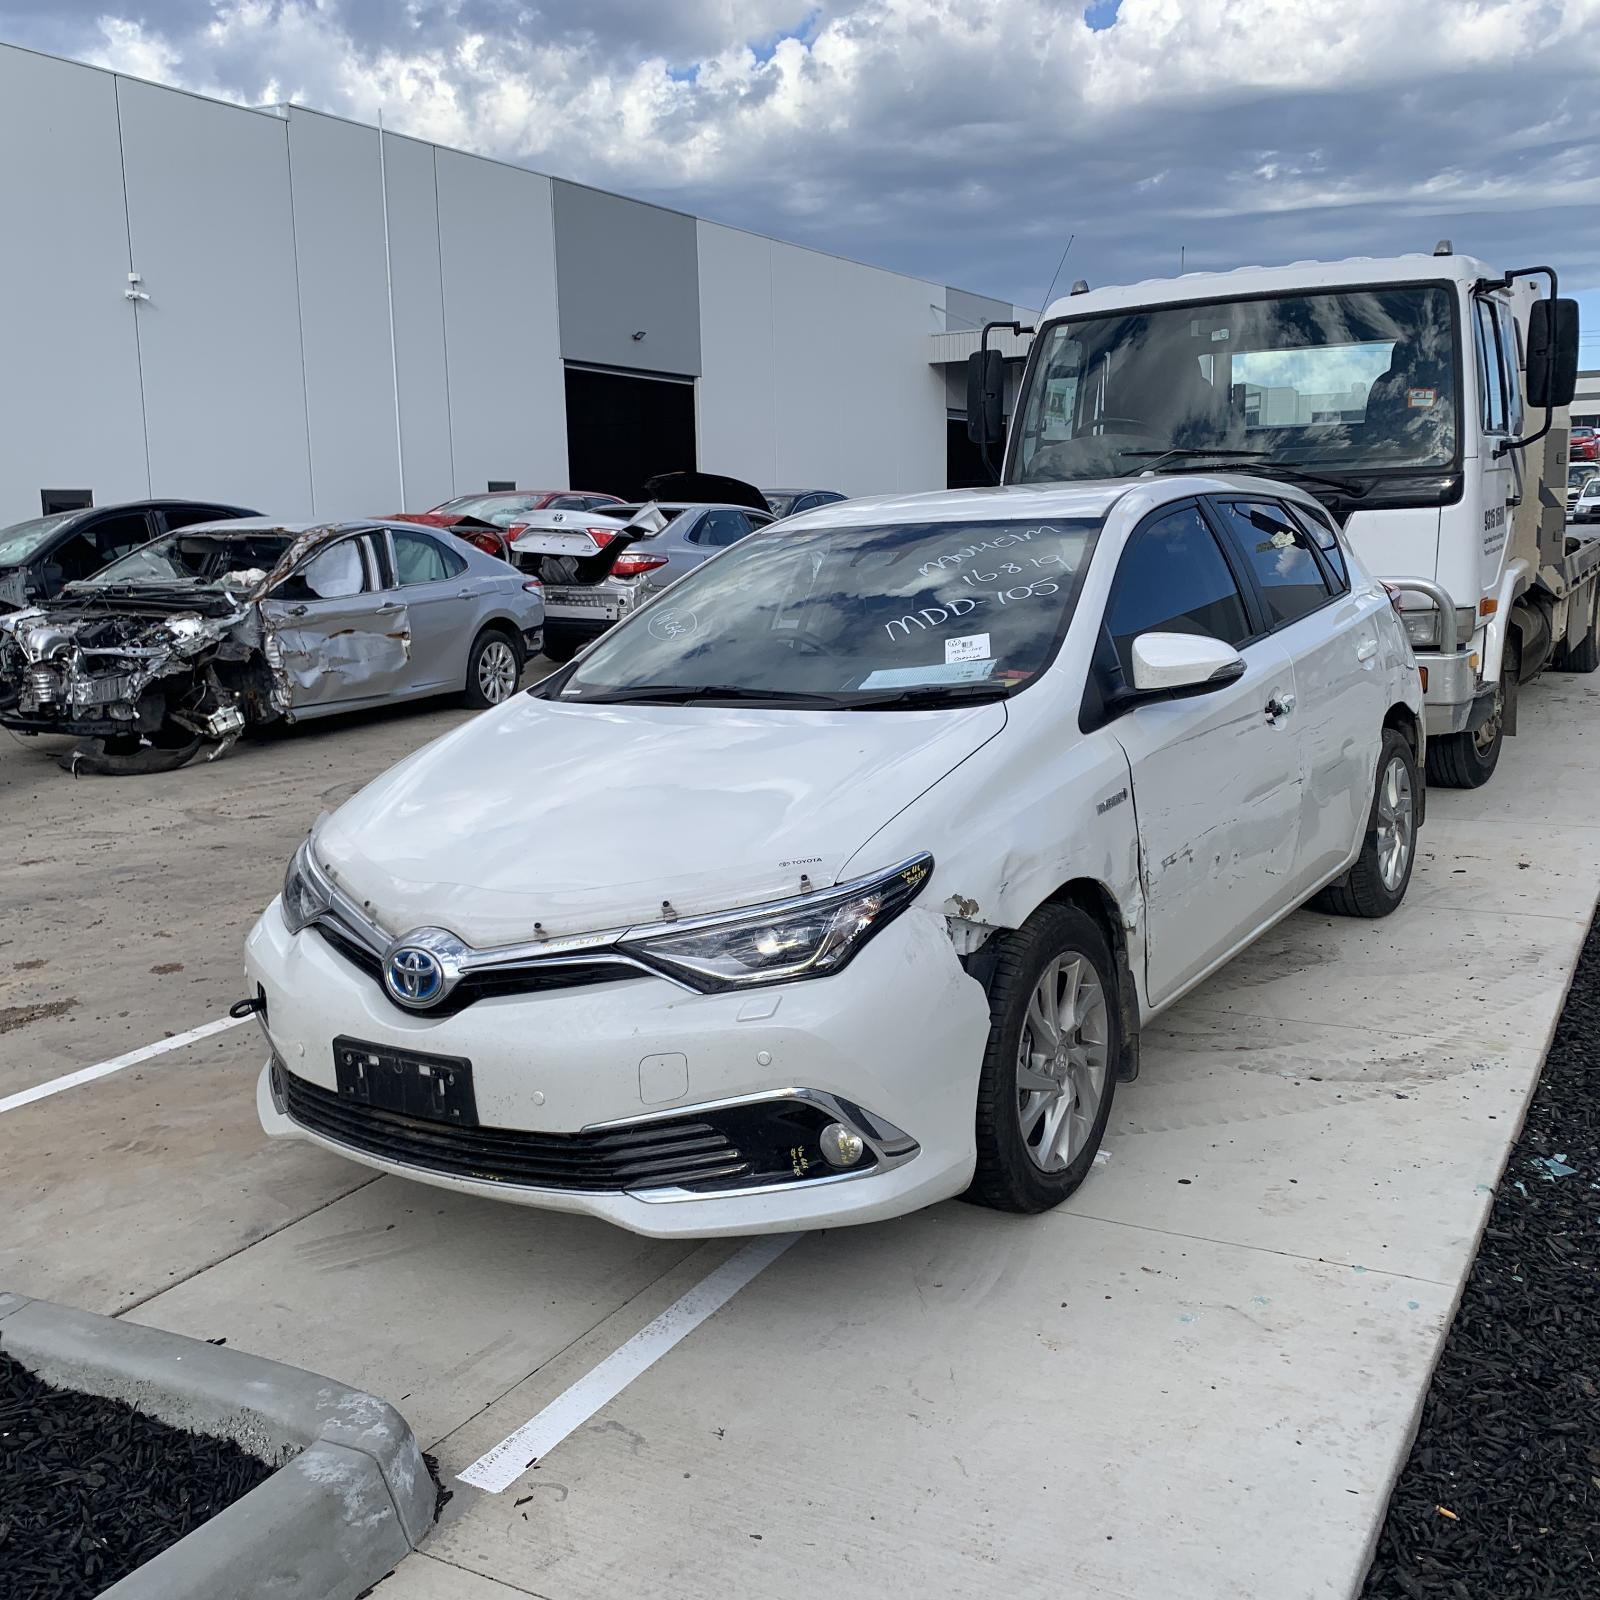 Toyota COROLLA ZWE186 HYBRID 2ZR-FXE 1.8L Engine Automatic FWD Transmission 10/12 - Current